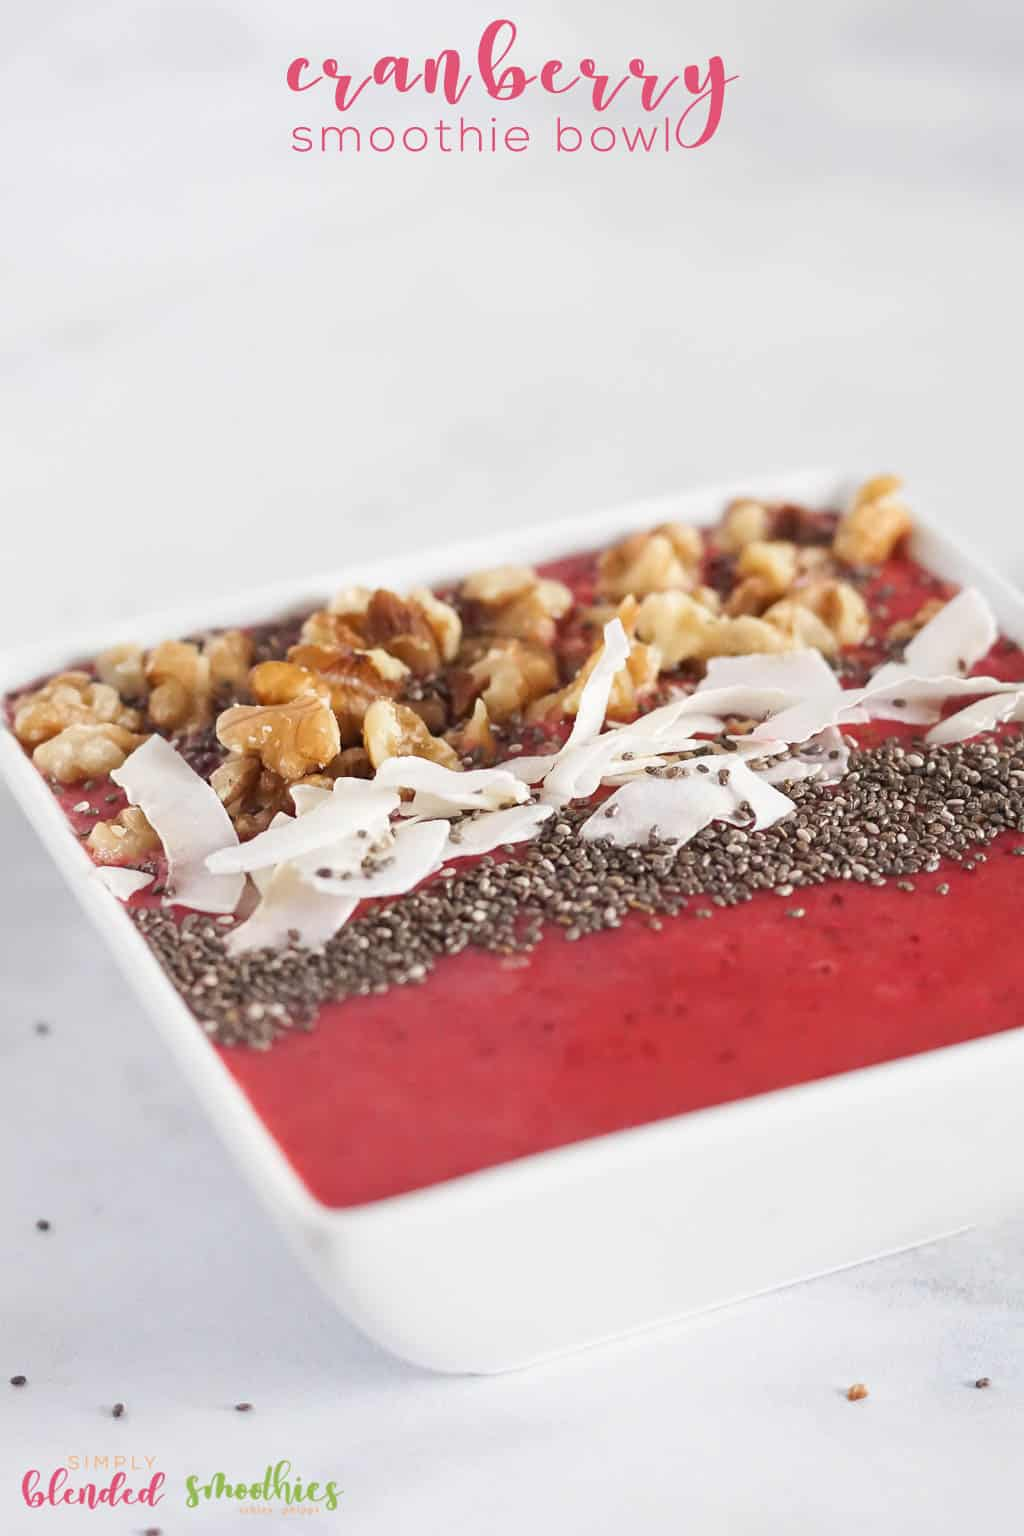 Cranberry Smoothie Bowl Recipe - A Simple And Healthy Smoothie That Is Sure To Fill You Up